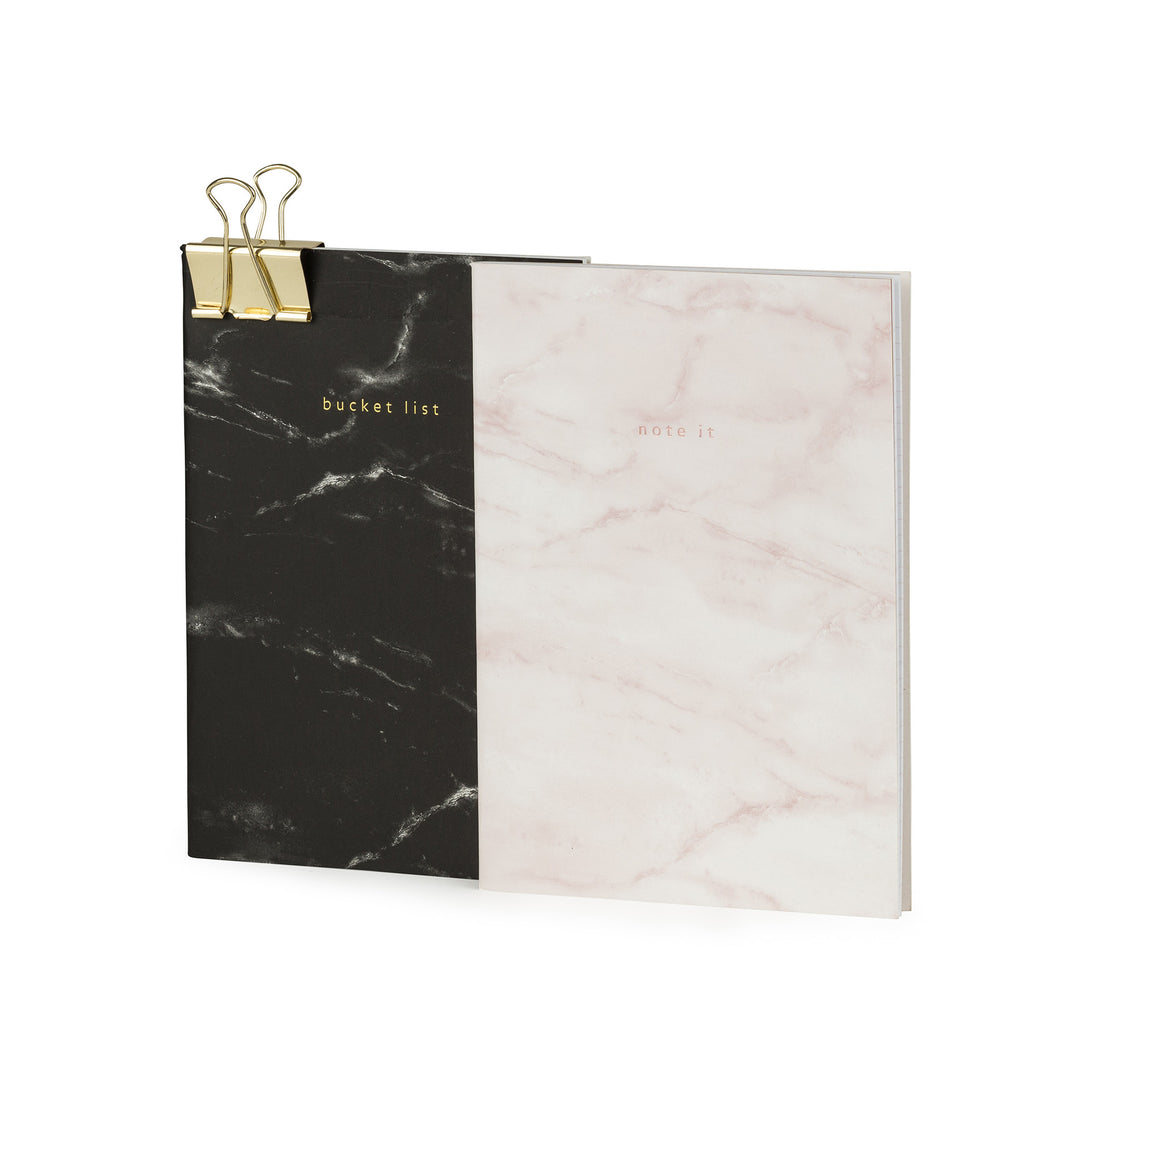 Bucket List & Note It Set Of A5 Marble Print Notebooks - The Love Trees